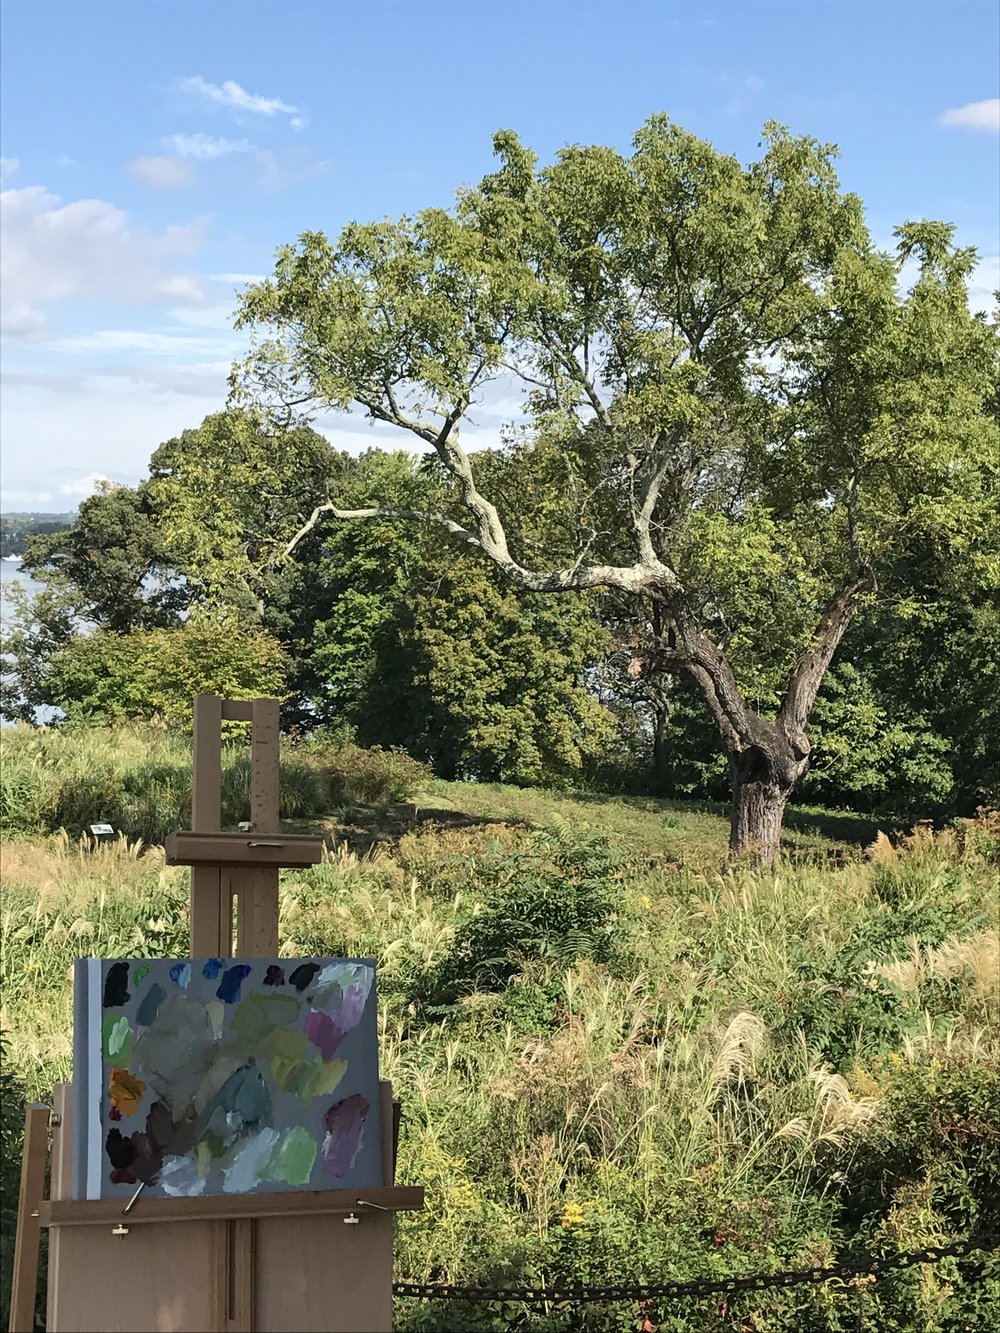 Plein Air painting at AHS River Farm in Alexandria, Virginia